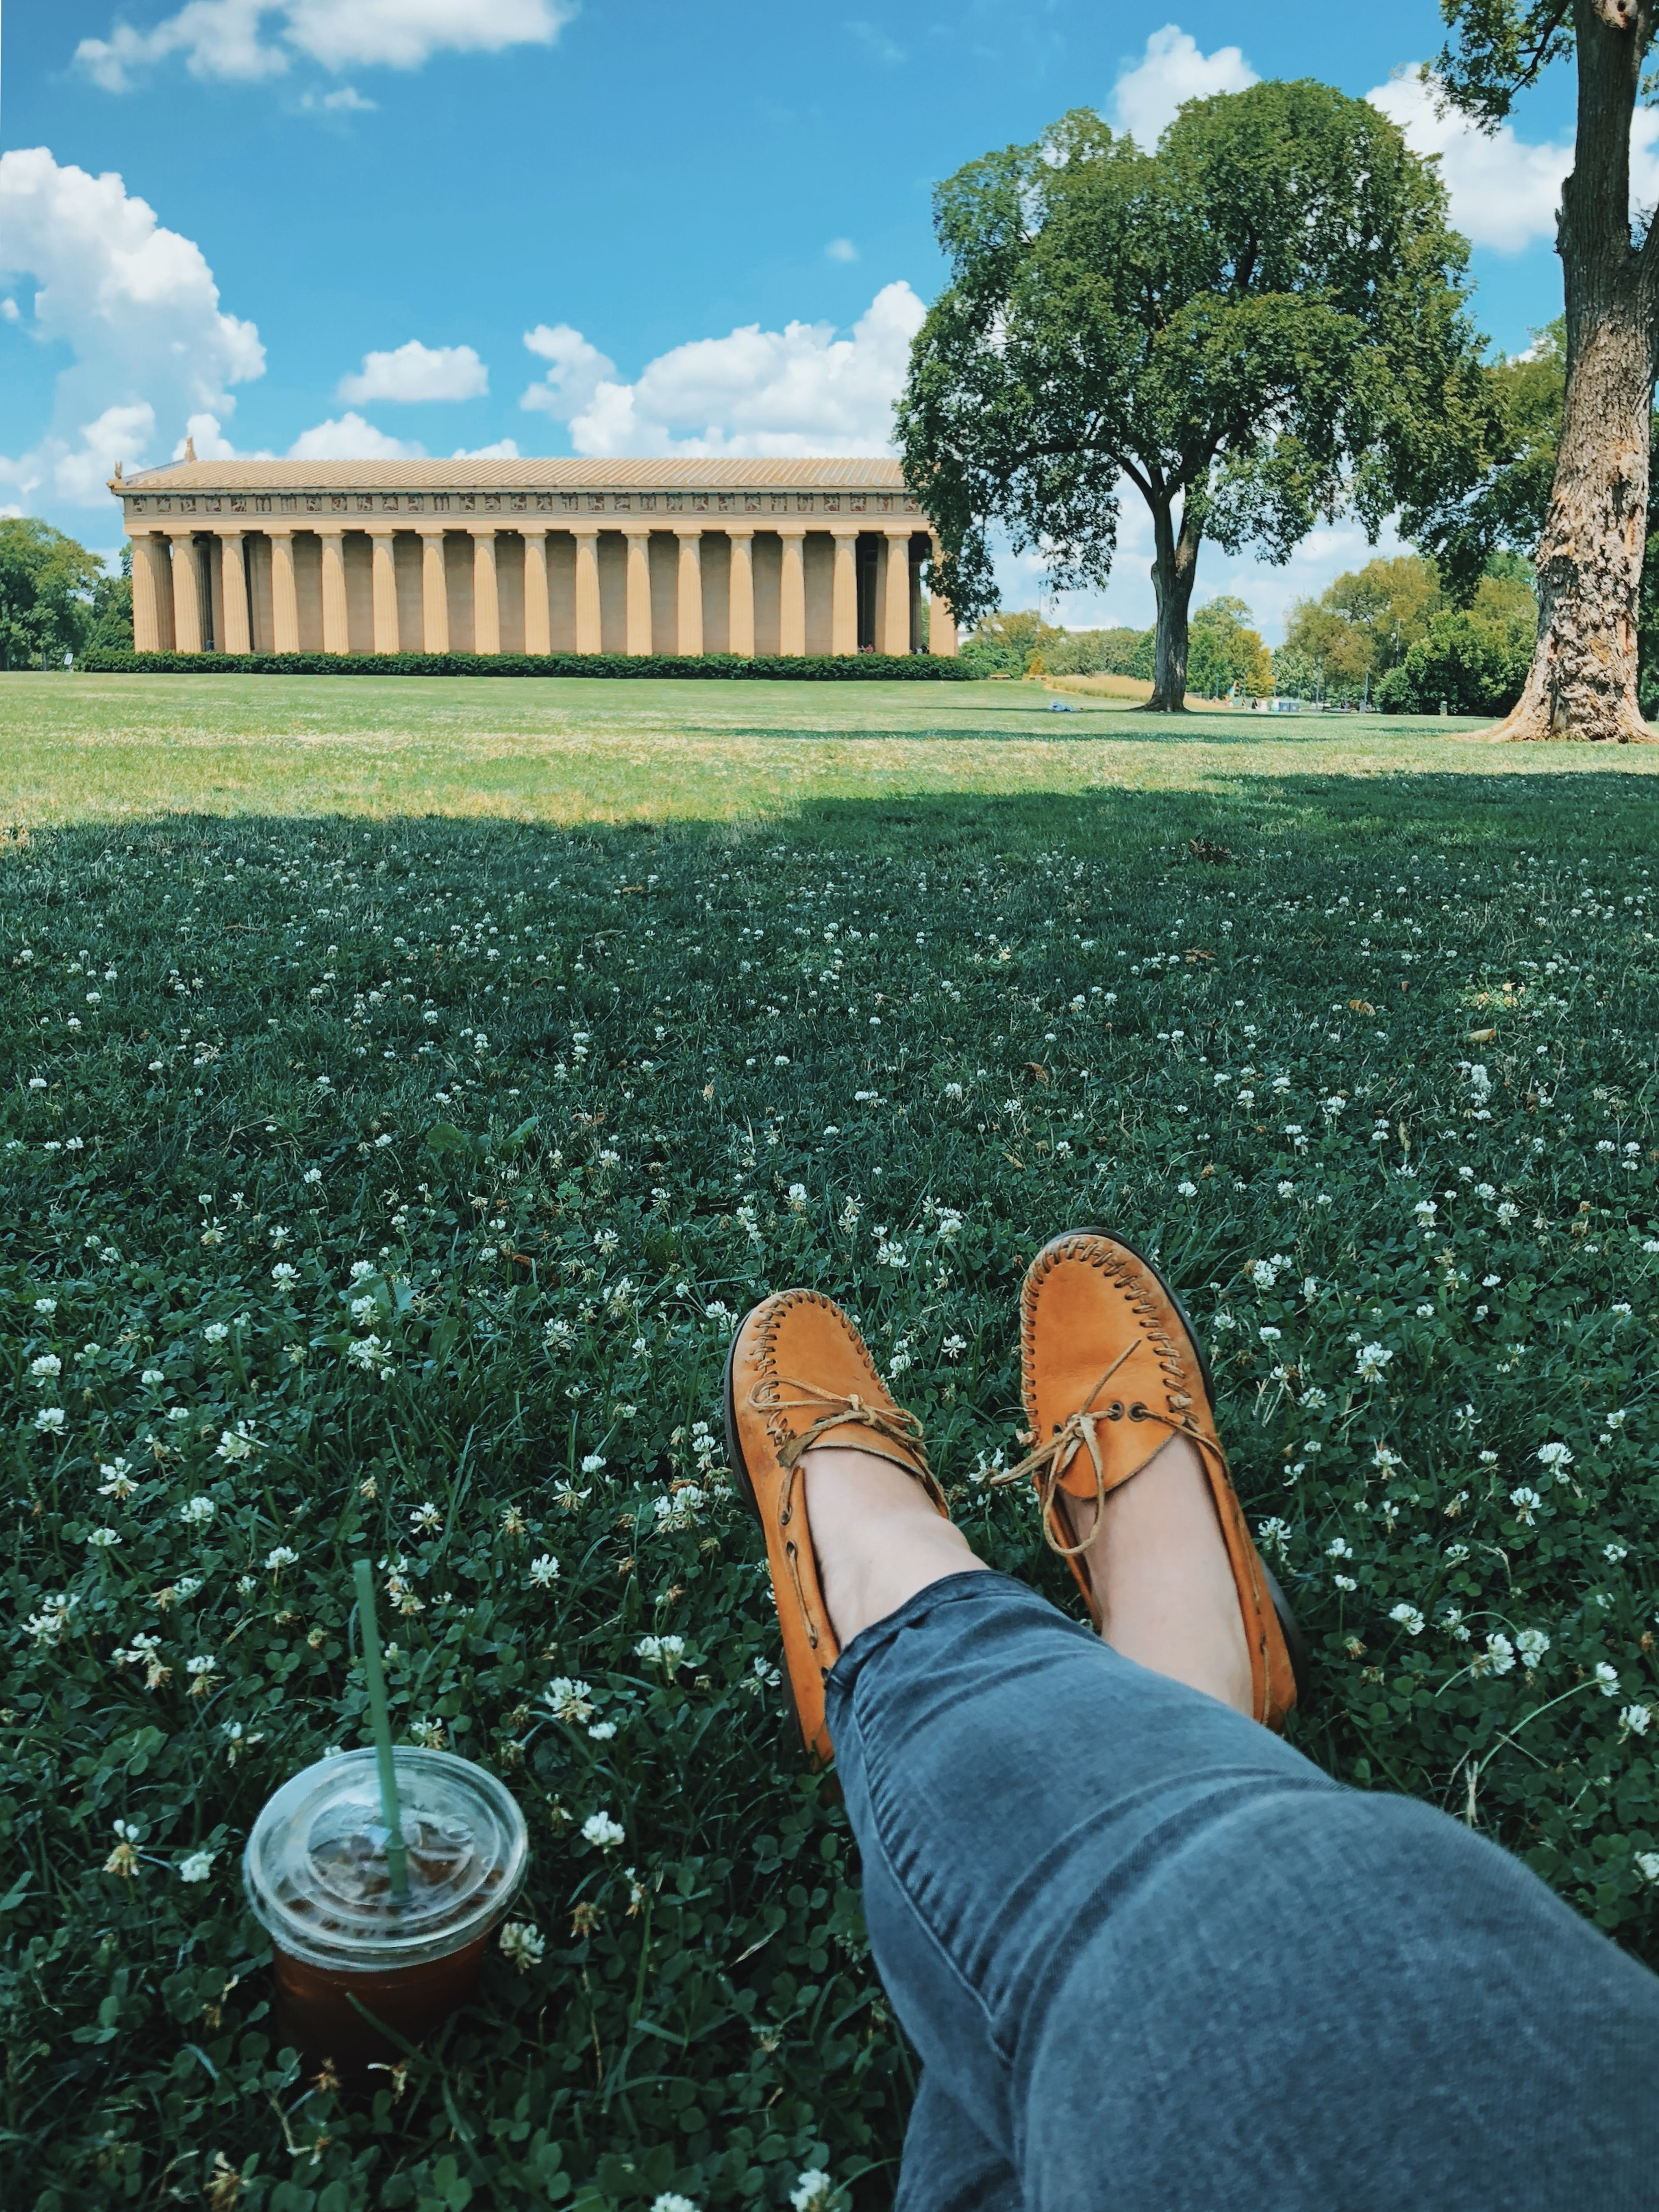 Centennial Park - One of our favorite moments of the trip had us stopping at Crema for a homemade chai latte and heading over to Centennial Park for a chill morning underneath the shade of a tree and views of the Parthenon.